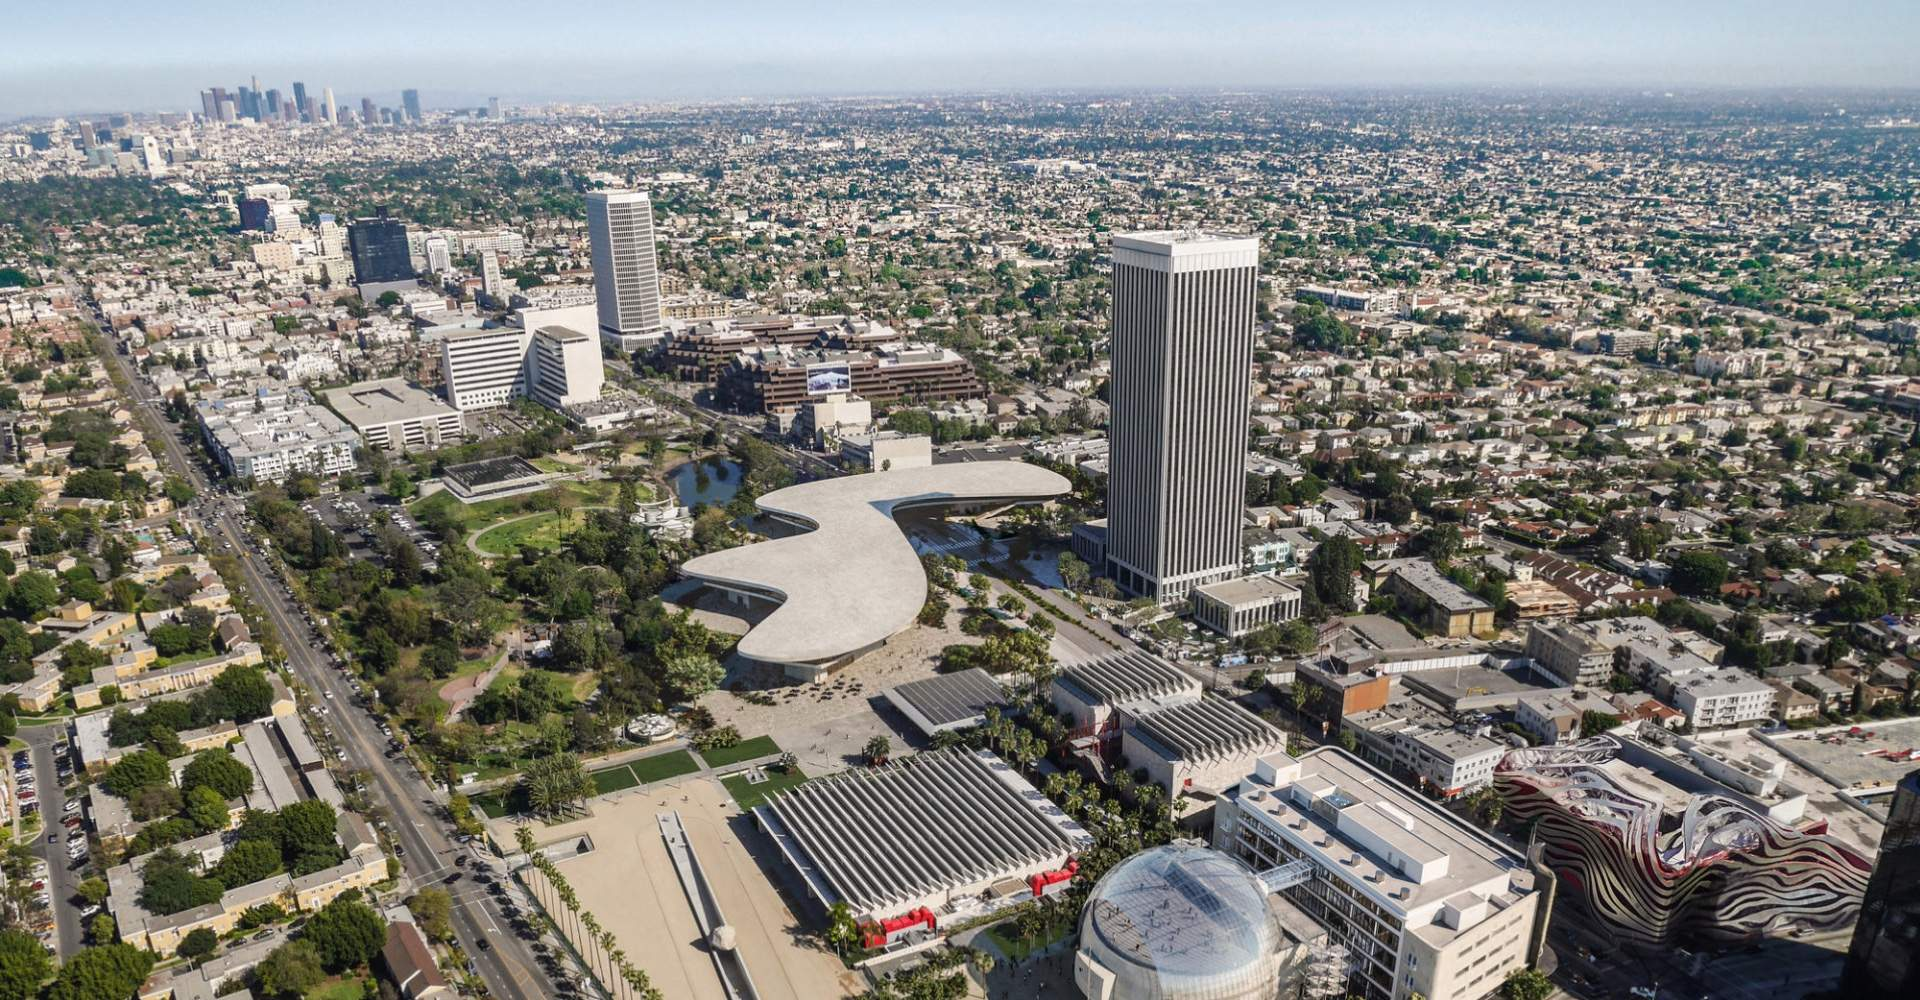 Aerial rendering of a large, flat, blobby-shaped building spanning an entire block, the new LACMA